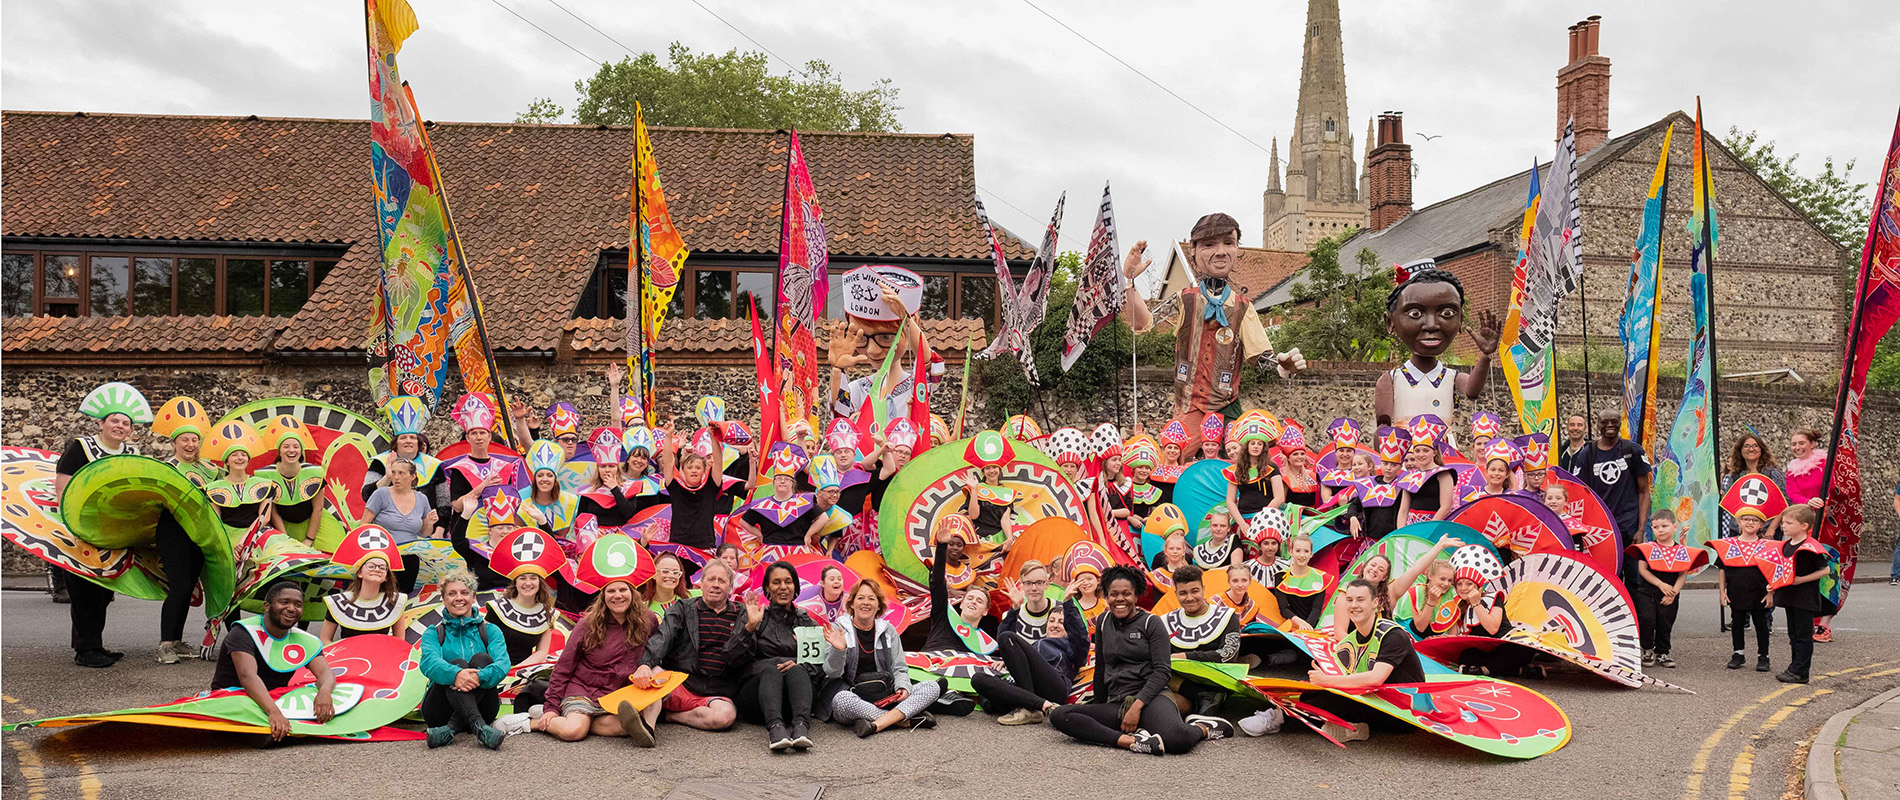 Norwich flags carnival group photo